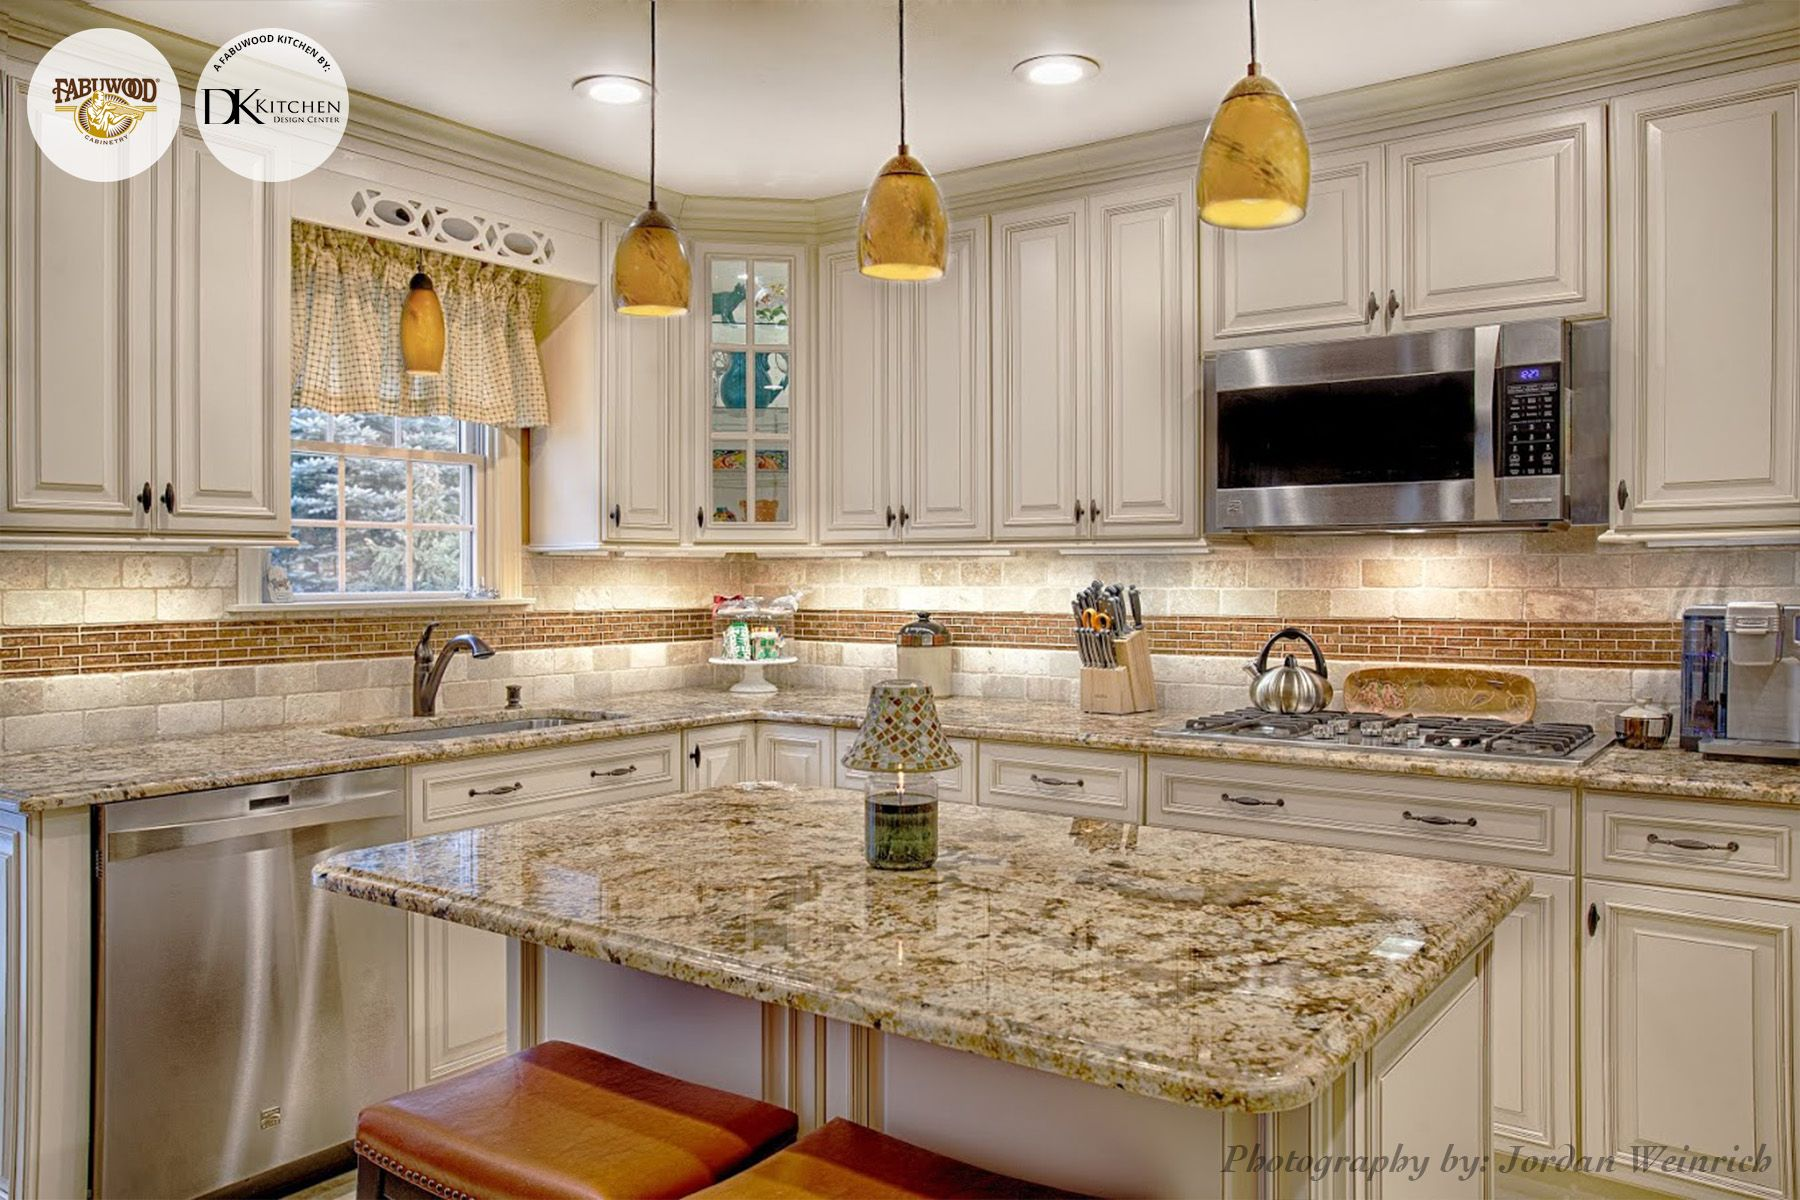 This Spectacular Kitchen Has All The Elements Of A Great Space Fantastic Lighting Stainless